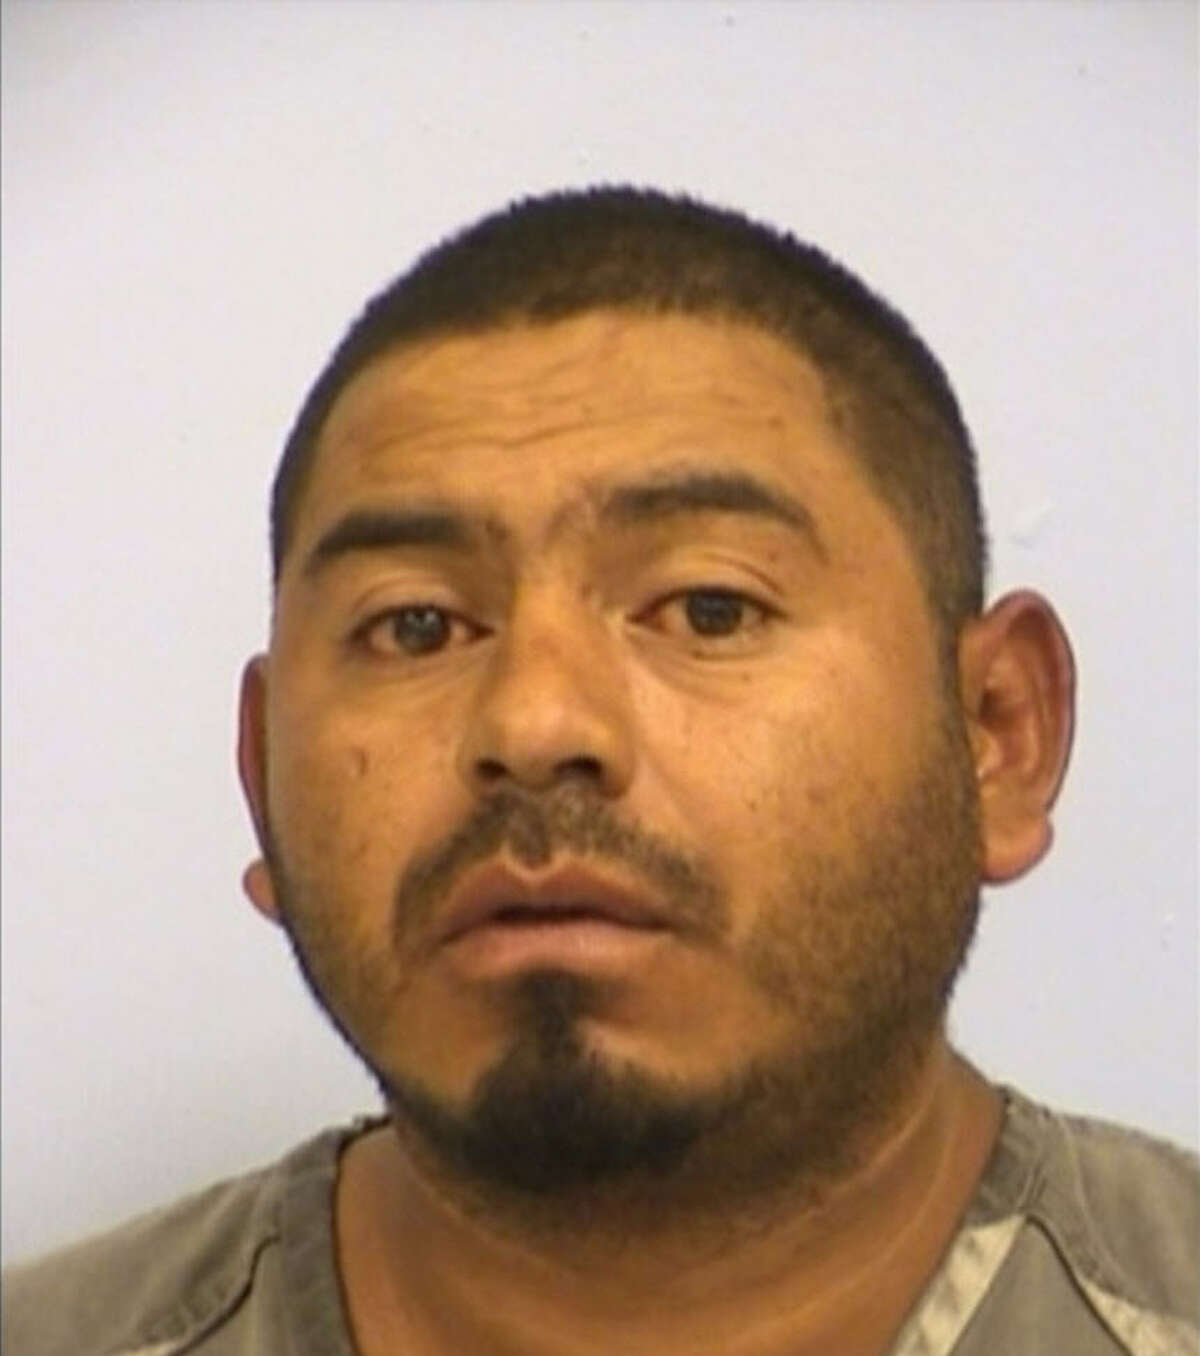 A March booking photo ofEliodoro Estala, 32, in Travis County, Texas. Estala is accused of having sexual relations with a chain-link fence at an Austin-area apartment complex. PHOTOS: Most outrageous 'Texas man' crimes ...